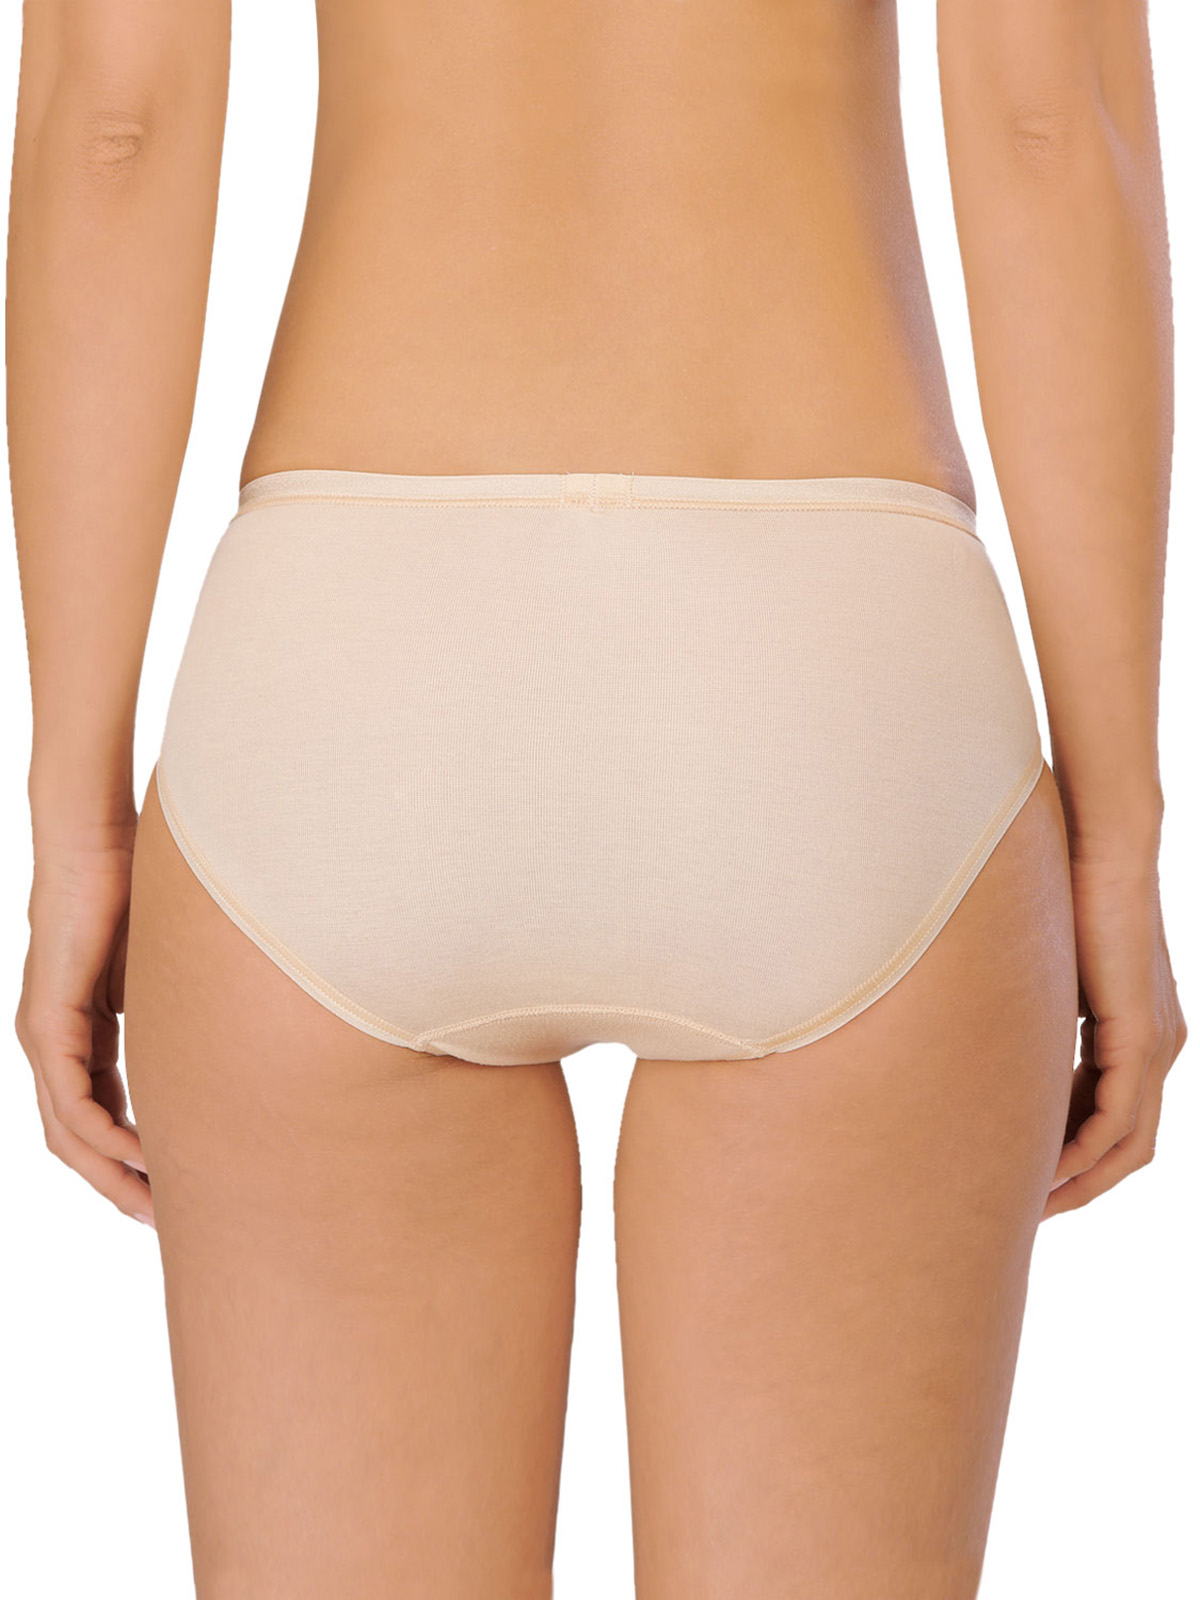 Naturana Women's Briefs 2142